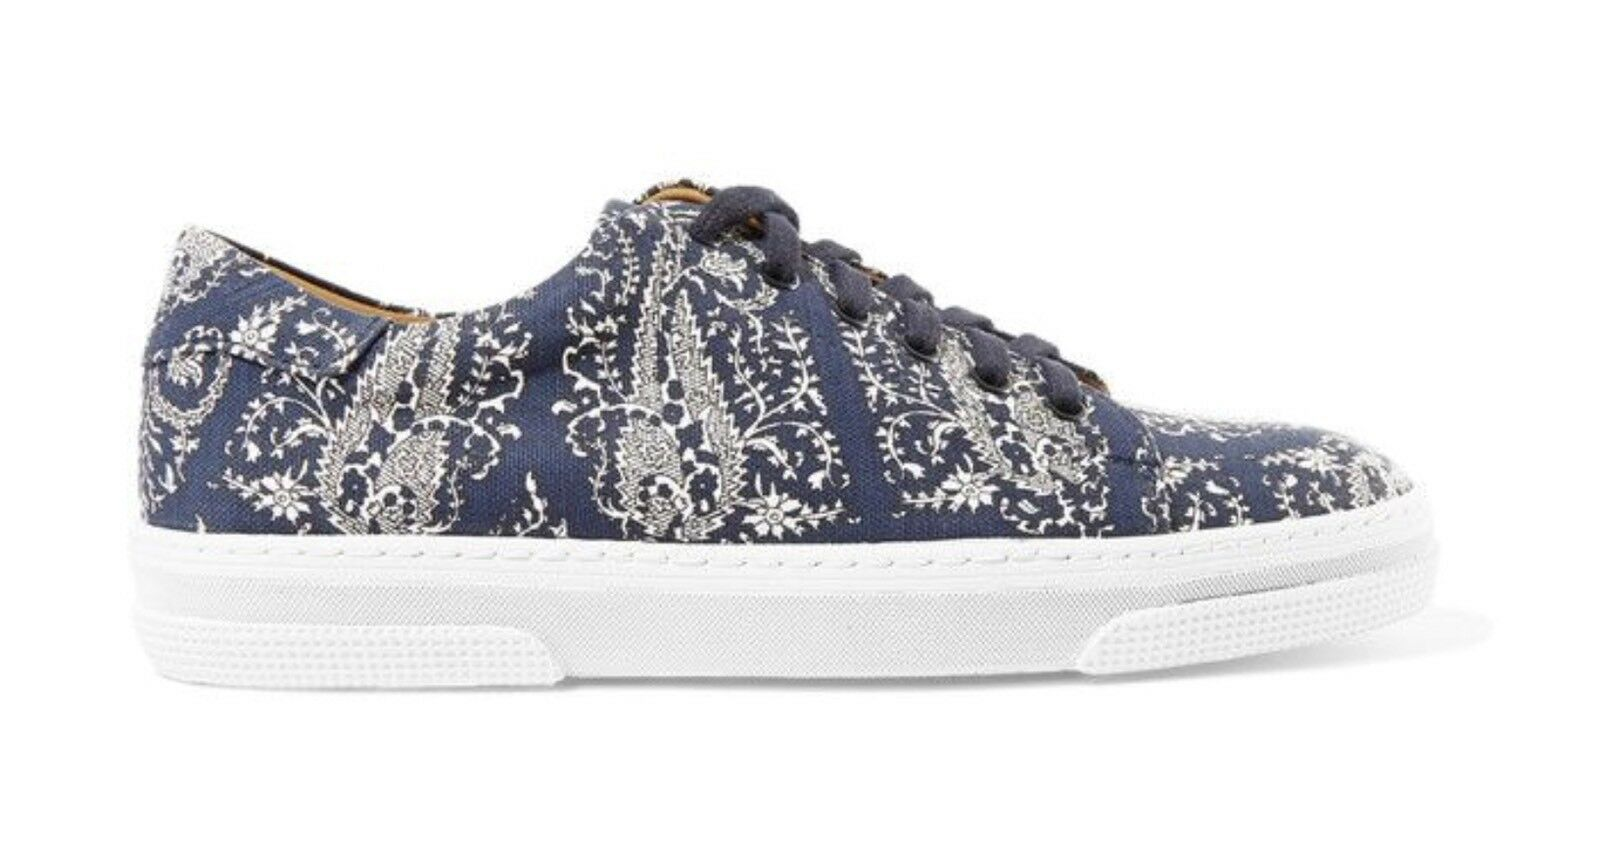 APC Designer Canvas Paisley Navy Print Sneakers Trainers Leather Lined S.38